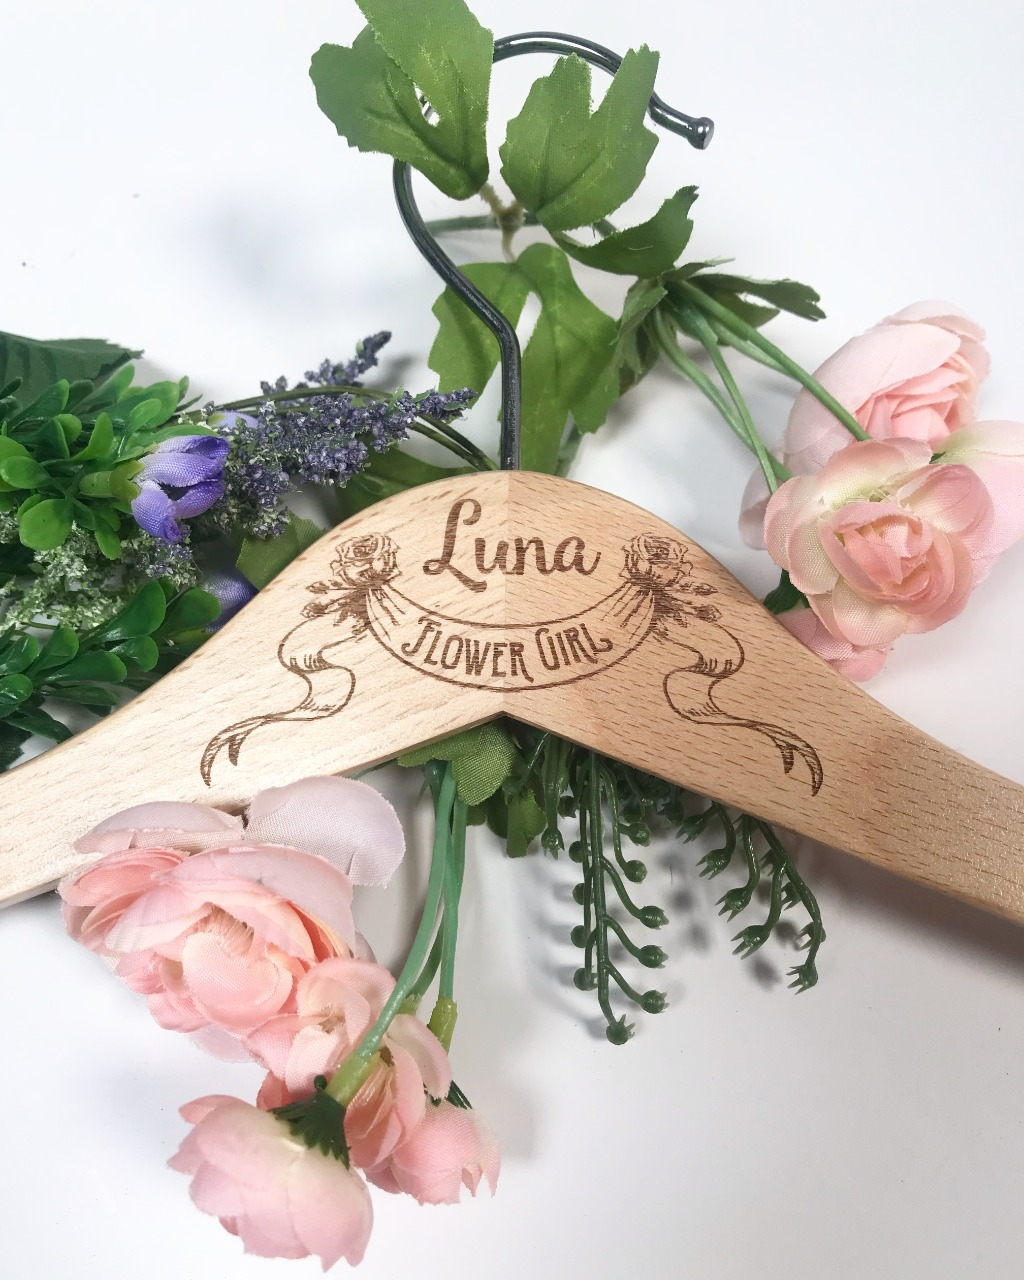 flower girl accessory, bridal party gifts